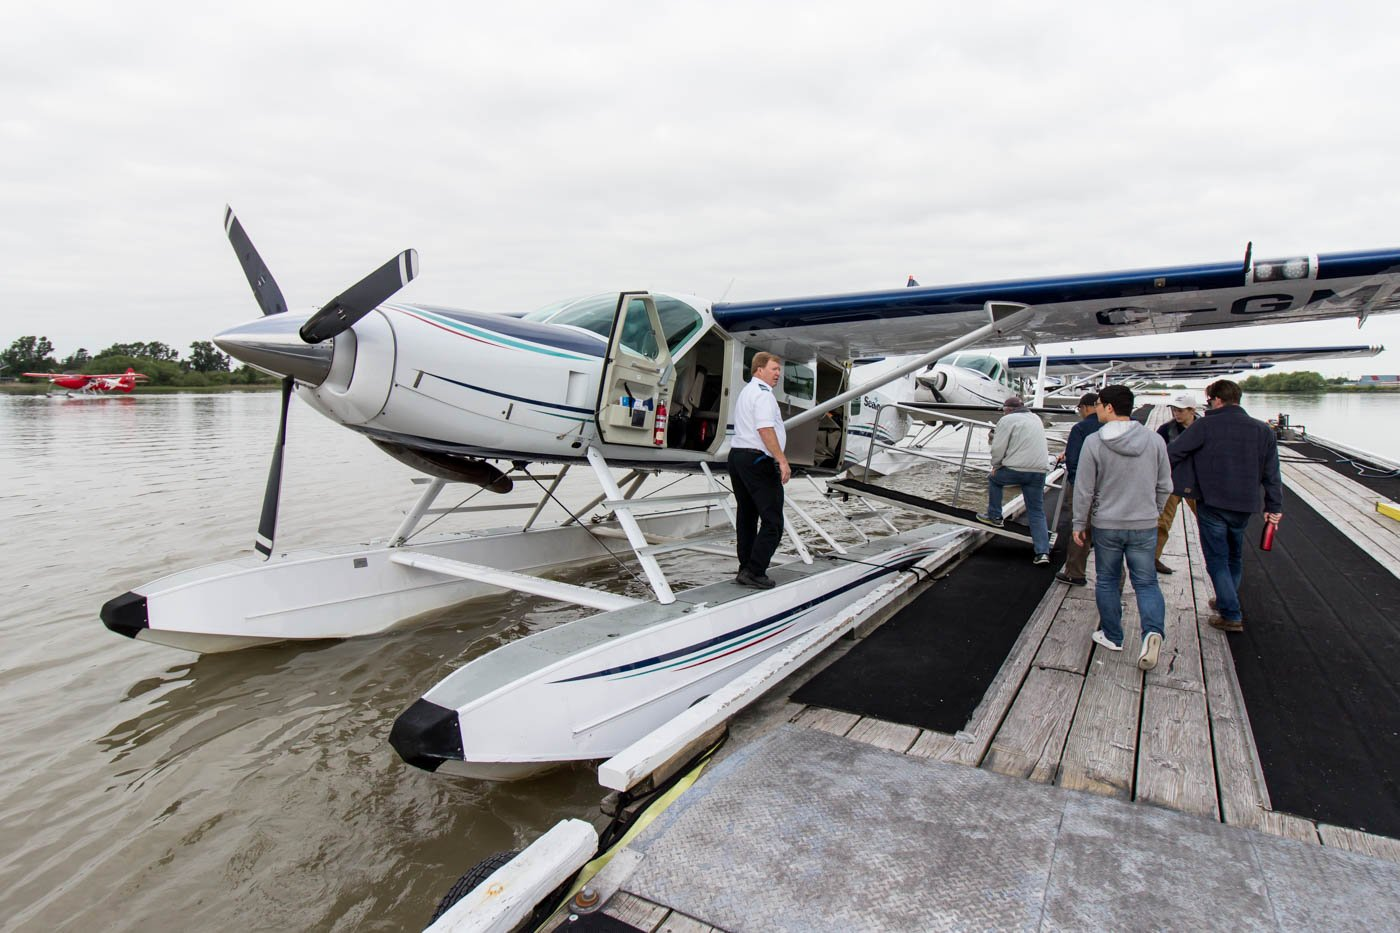 Boarding Seair Seaplanes in Richmond